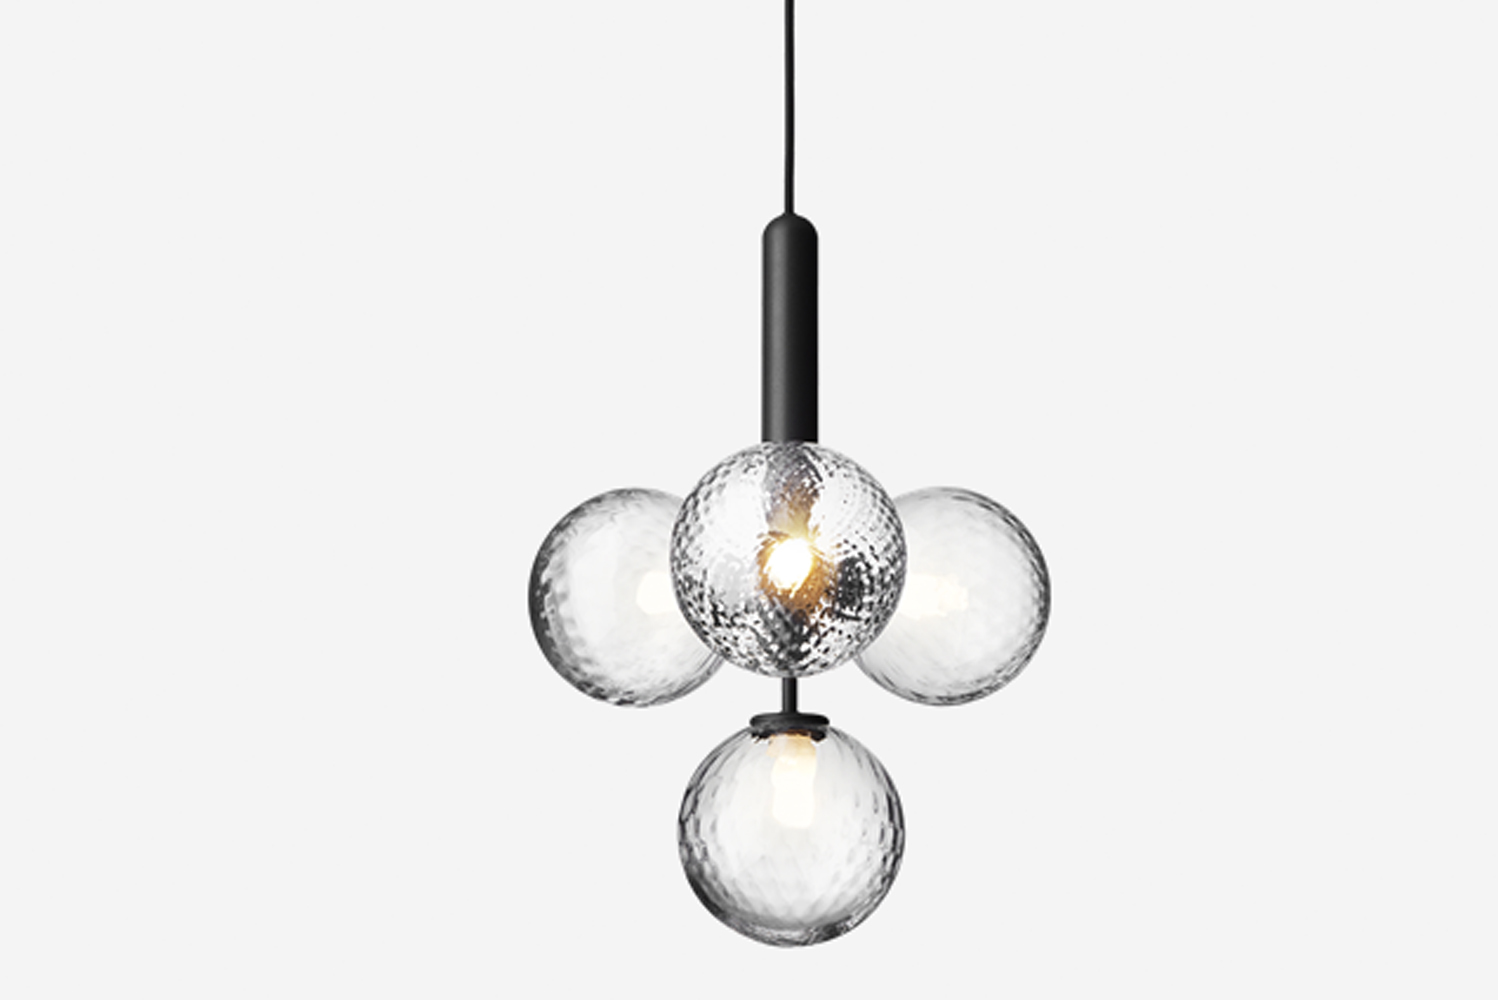 The light is available in multiple configurations, including single pendant lamps, chandeliers, wall lamps and table lamps.